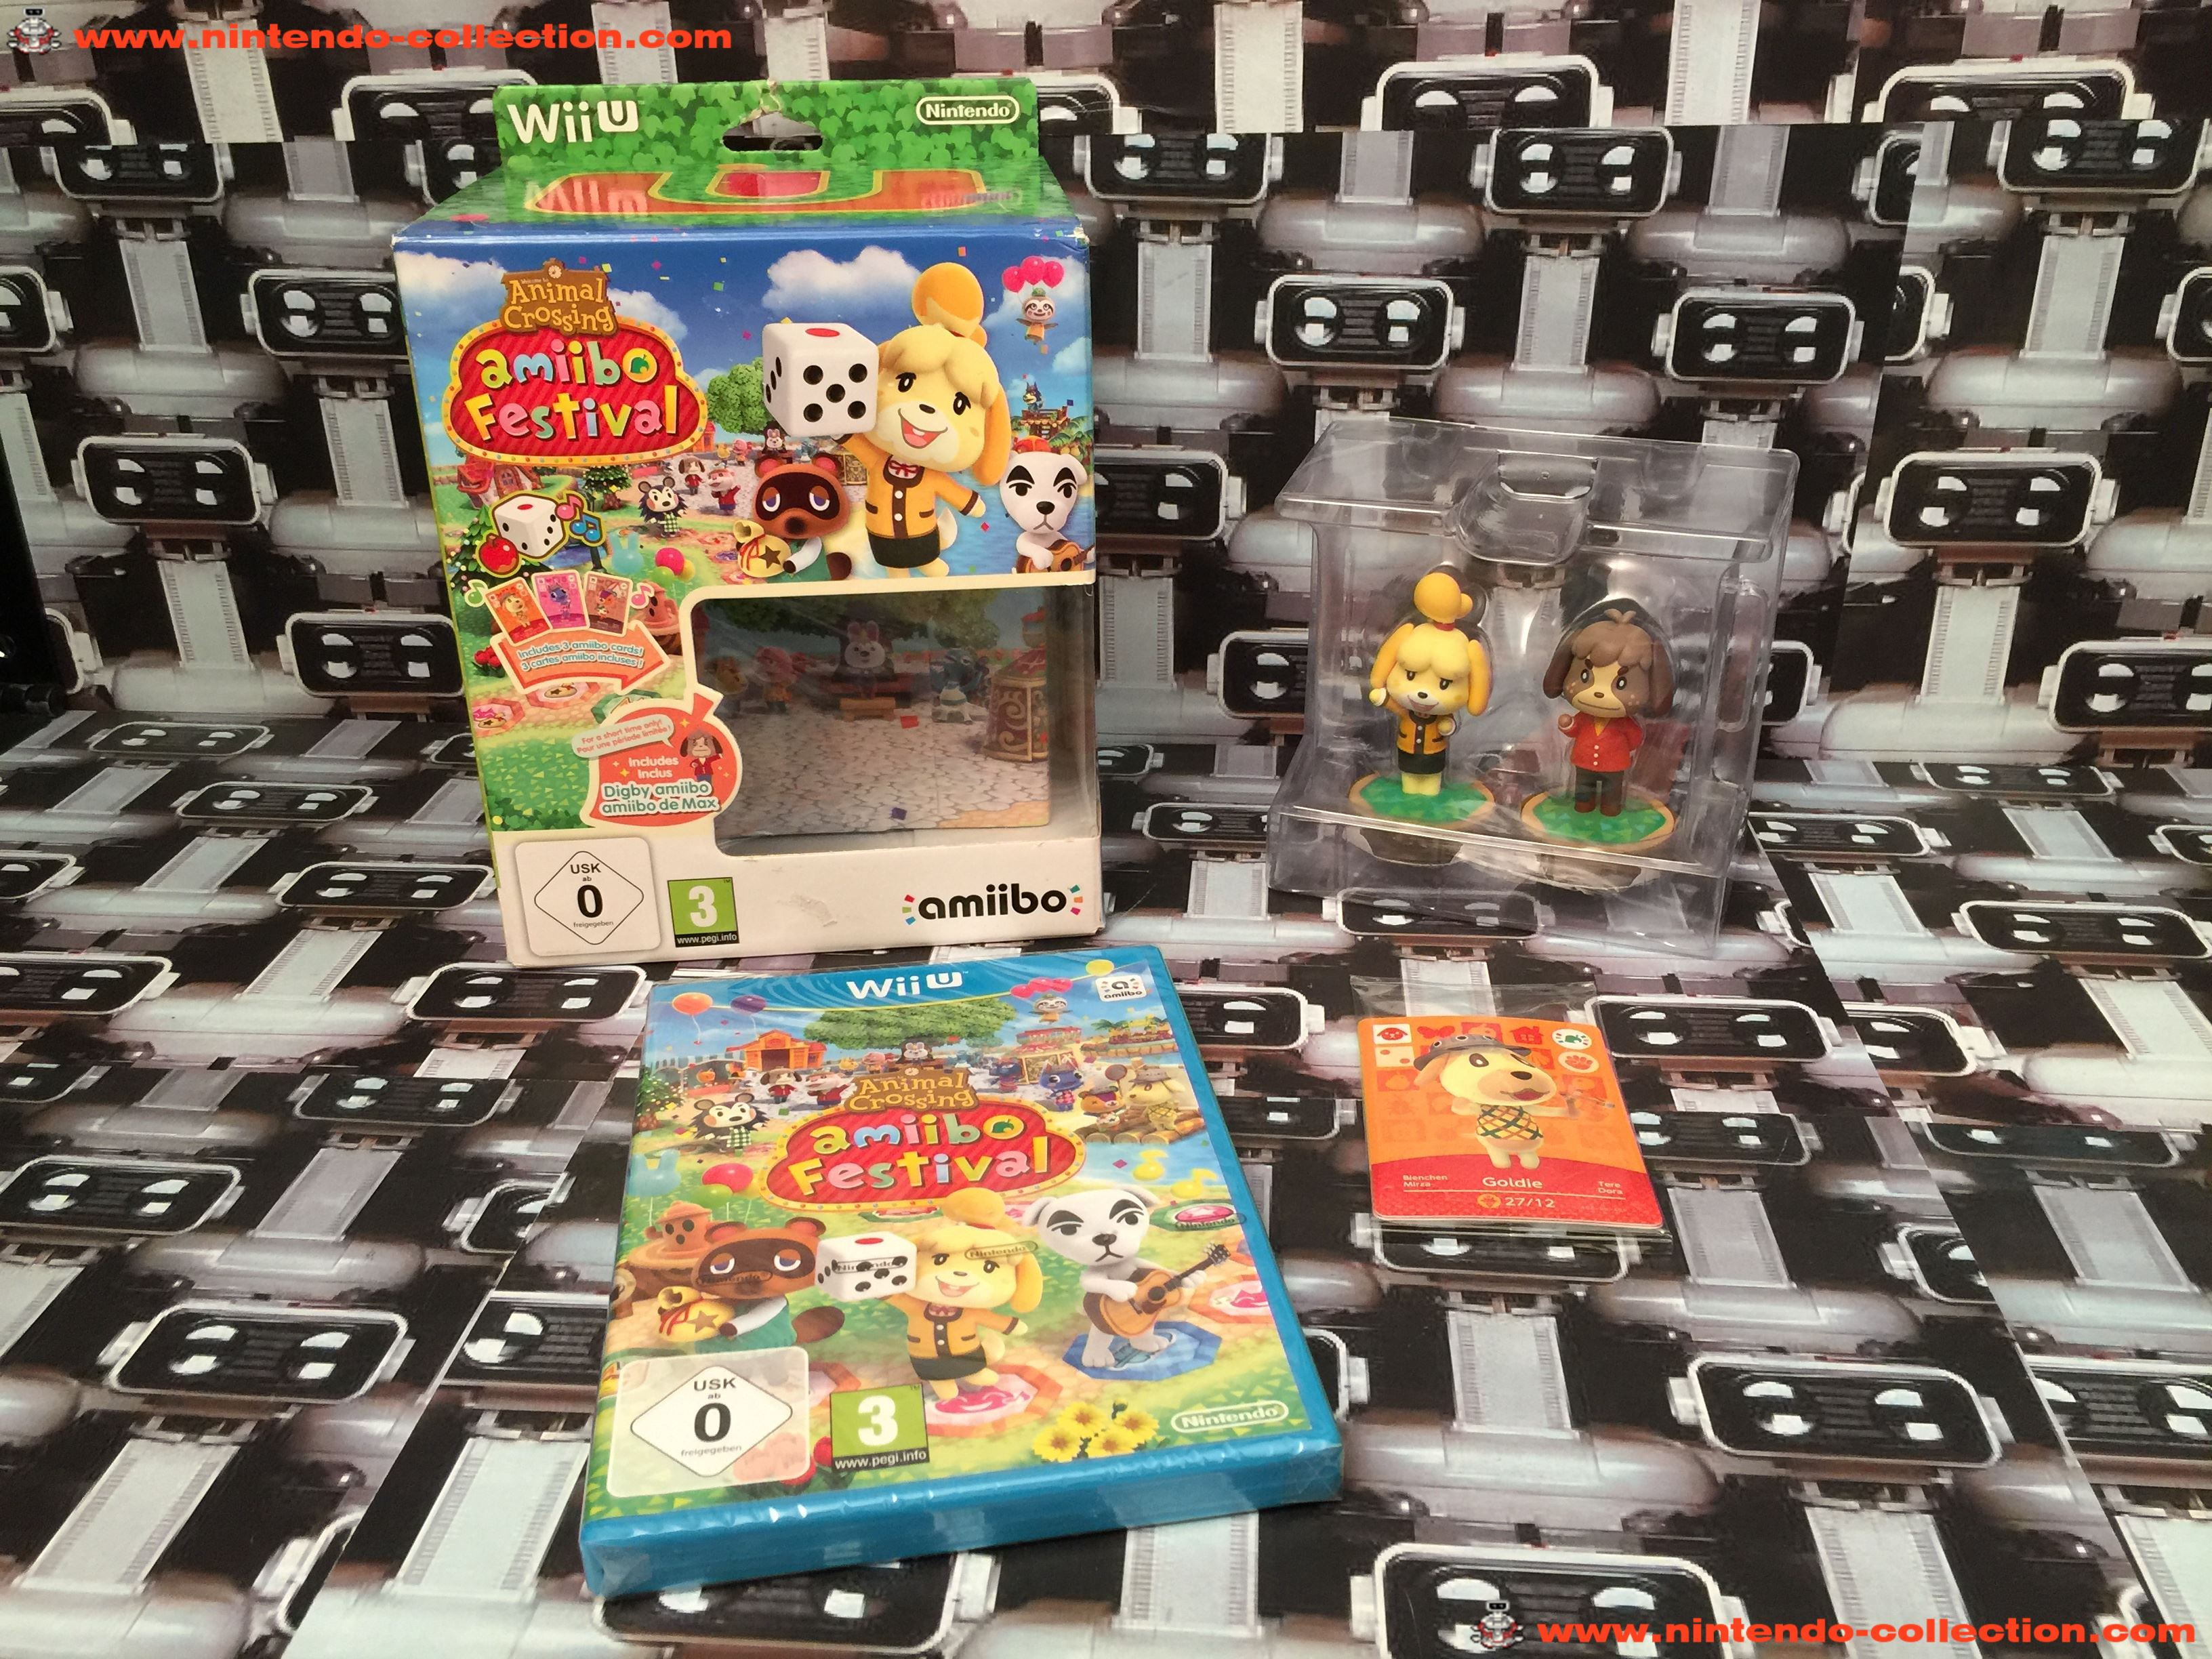 www.nintendo-collection.com - Wii U Game Jeu Collector Animal Crossing Amiibo Festival - 01